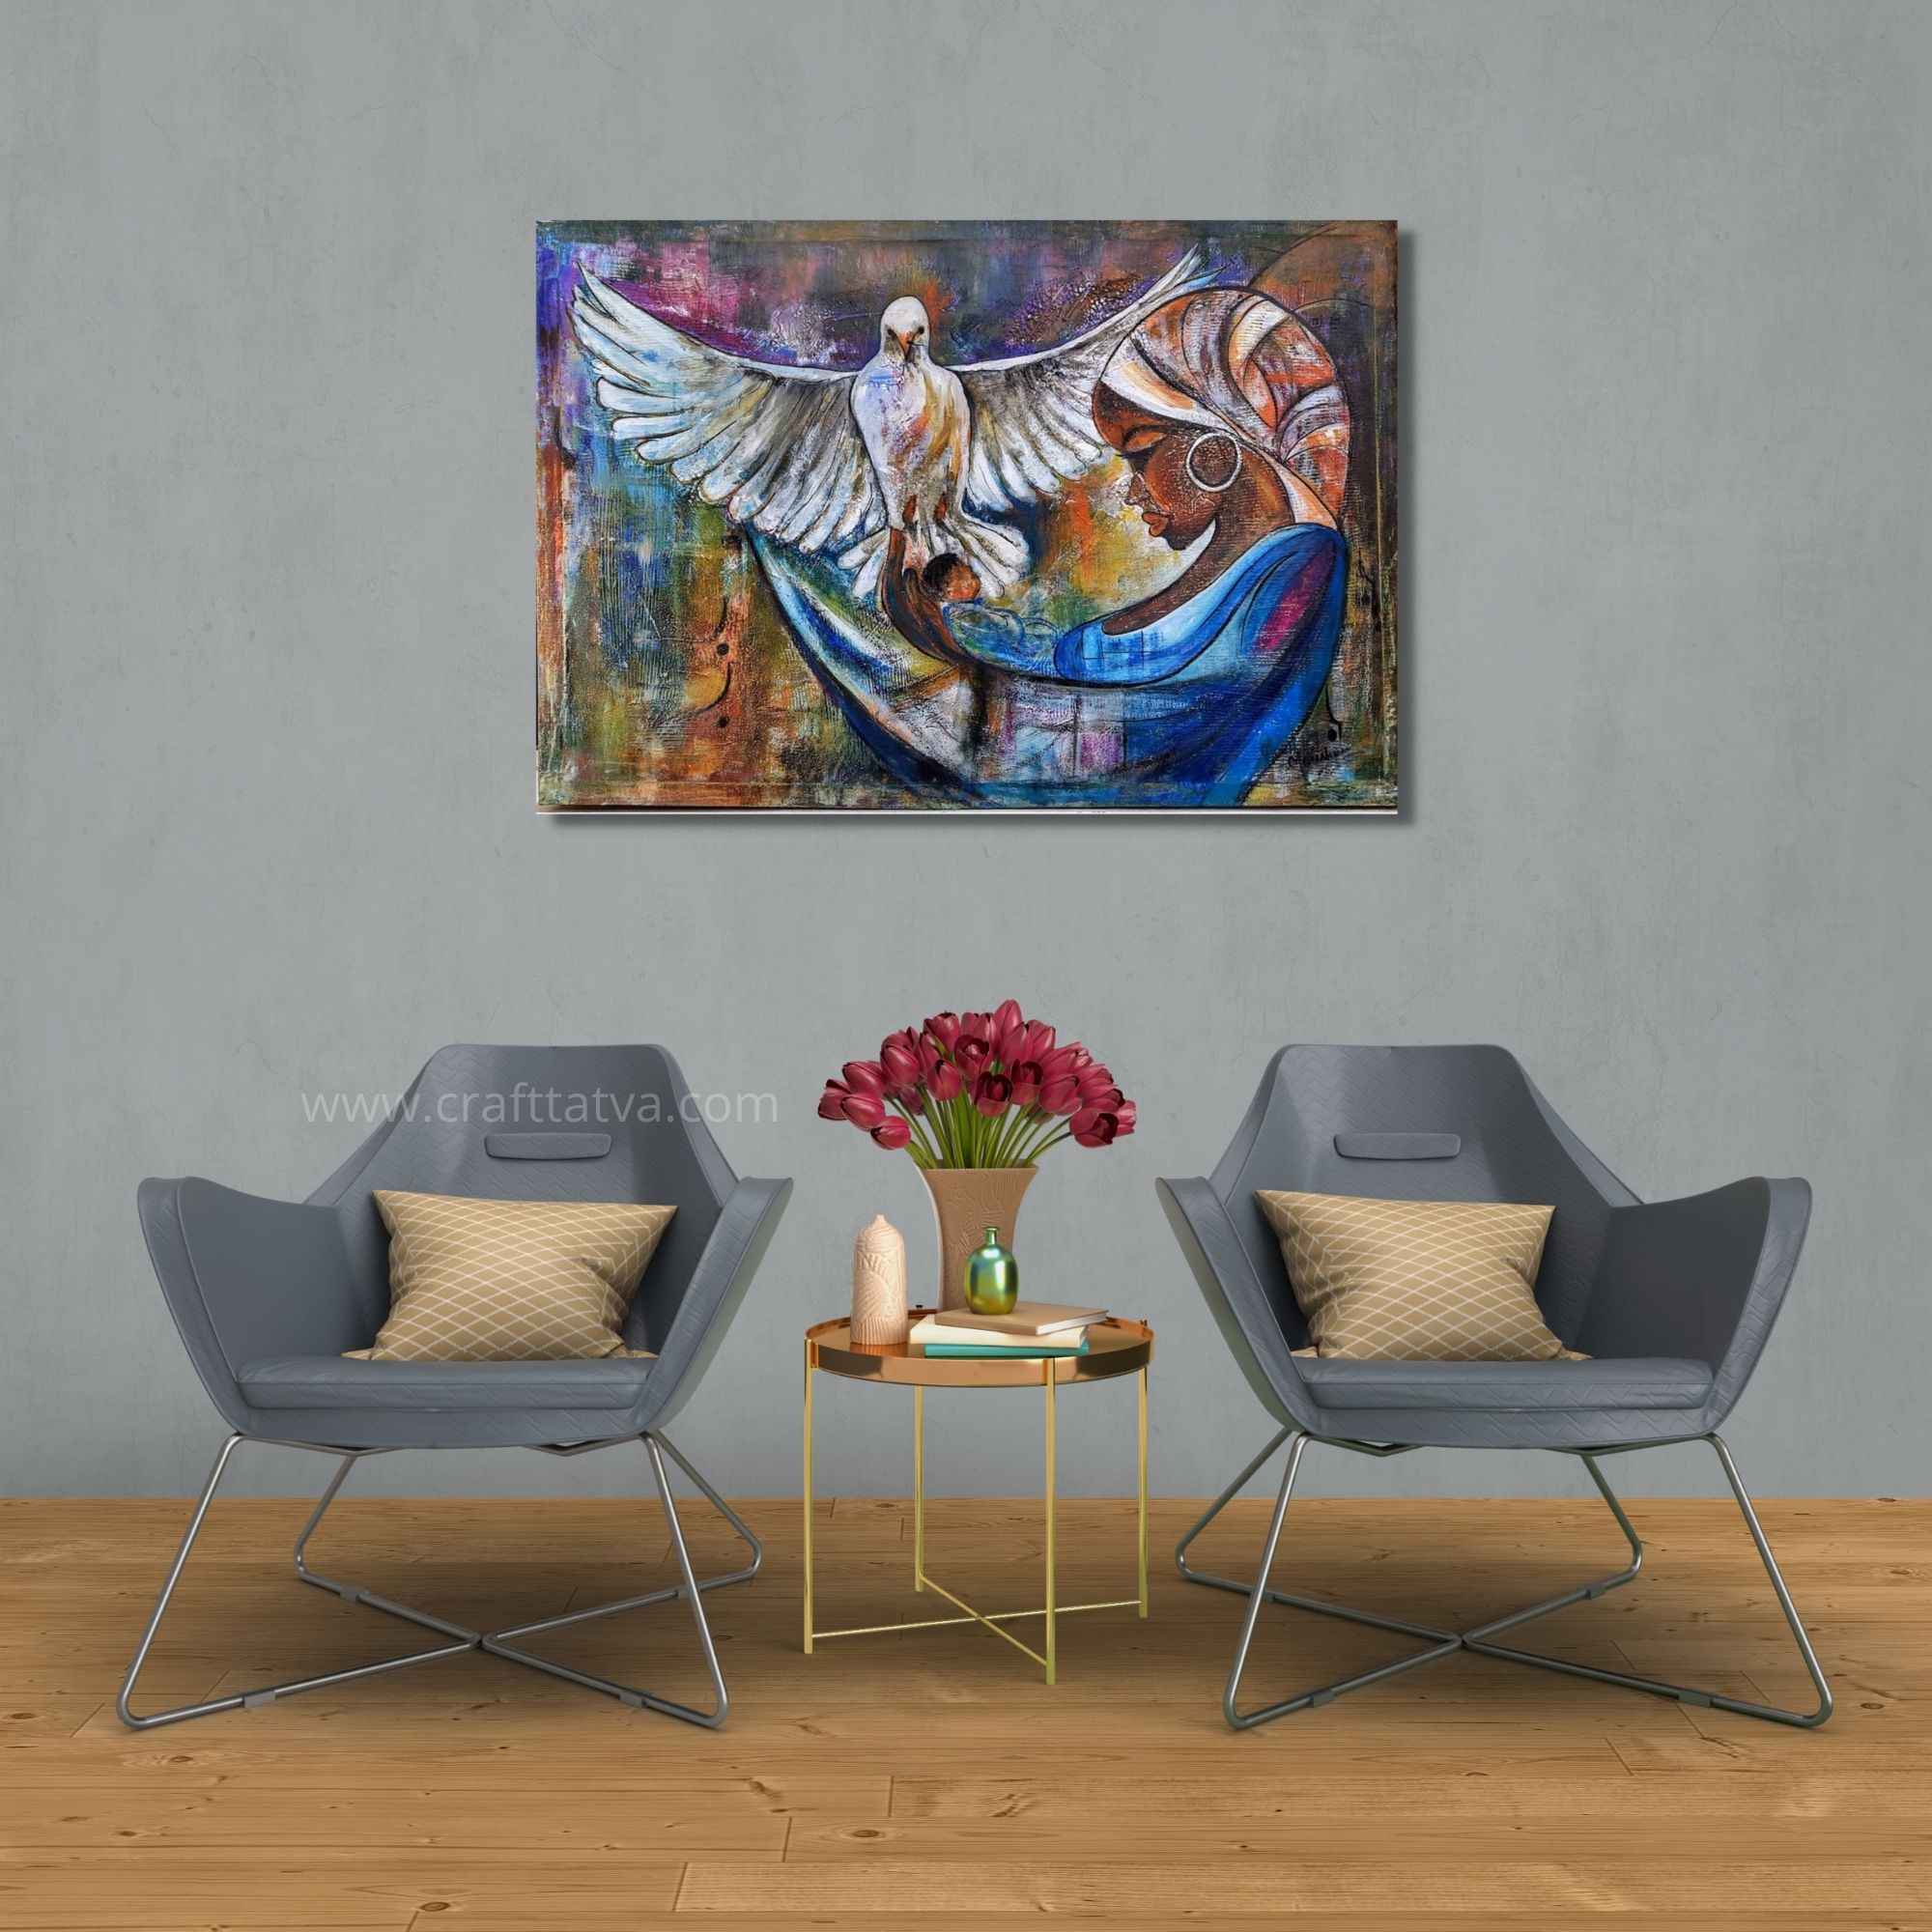 The Mystical love - Mixed media on canvas- 24×36 Inch